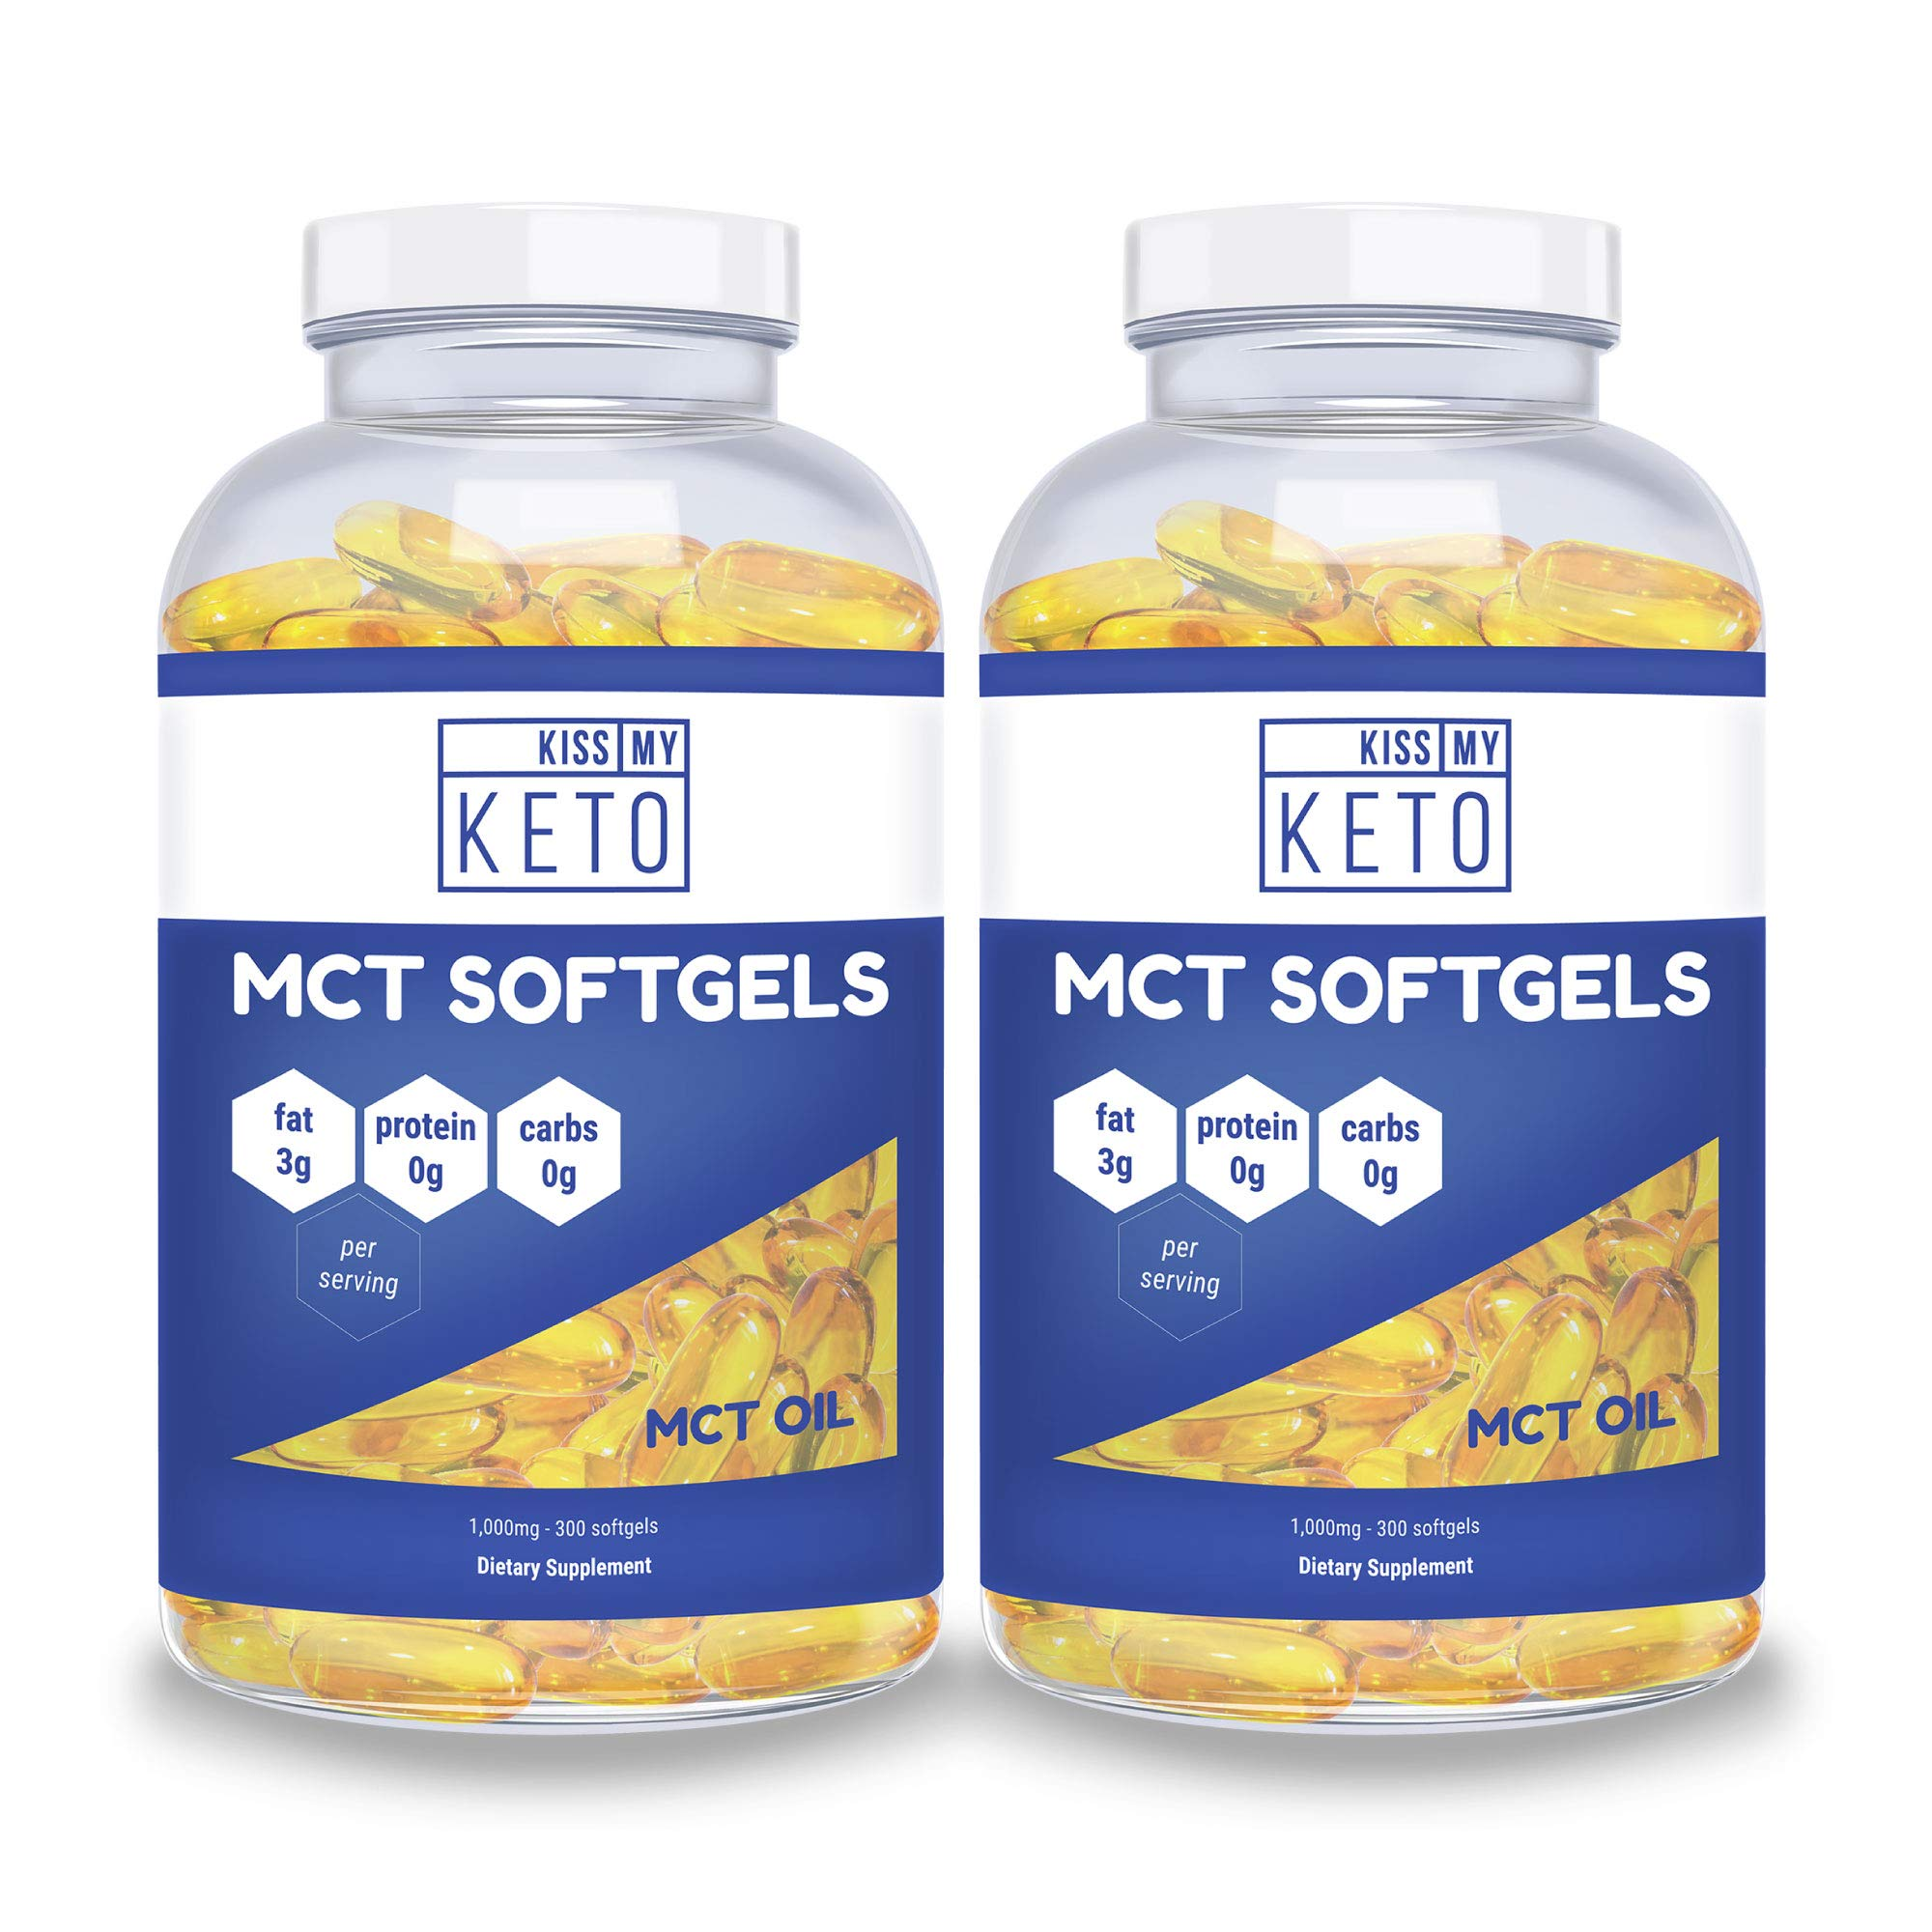 Kiss My Keto MCT Oil Capsules - Coconut Oil Softgel Pills, 300 Count, MCT Pills, Best MCT Oil Keto Ketogenic Diet. Caprylic Acid C8 & C10 Medium Chain Triglycerides Diet Keto Supplement (2 Pack) by Kiss My Keto